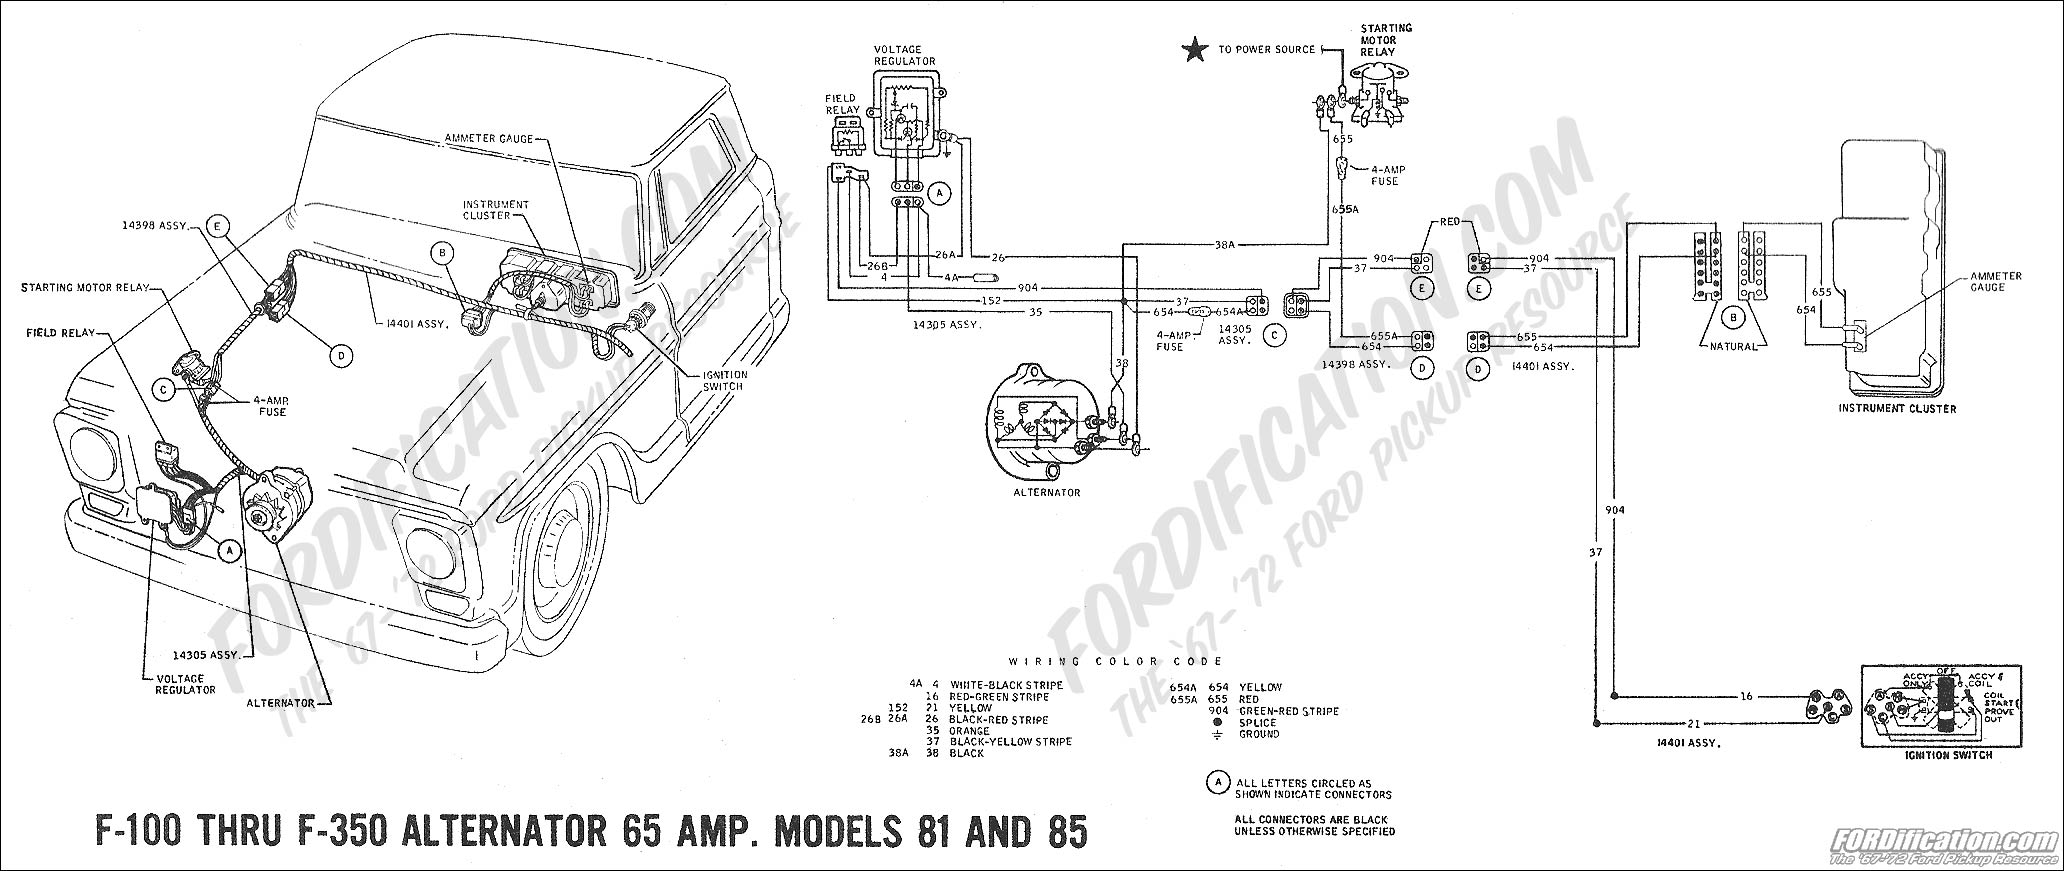 1966 ford f100 charging system wiring diagram   45 wiring